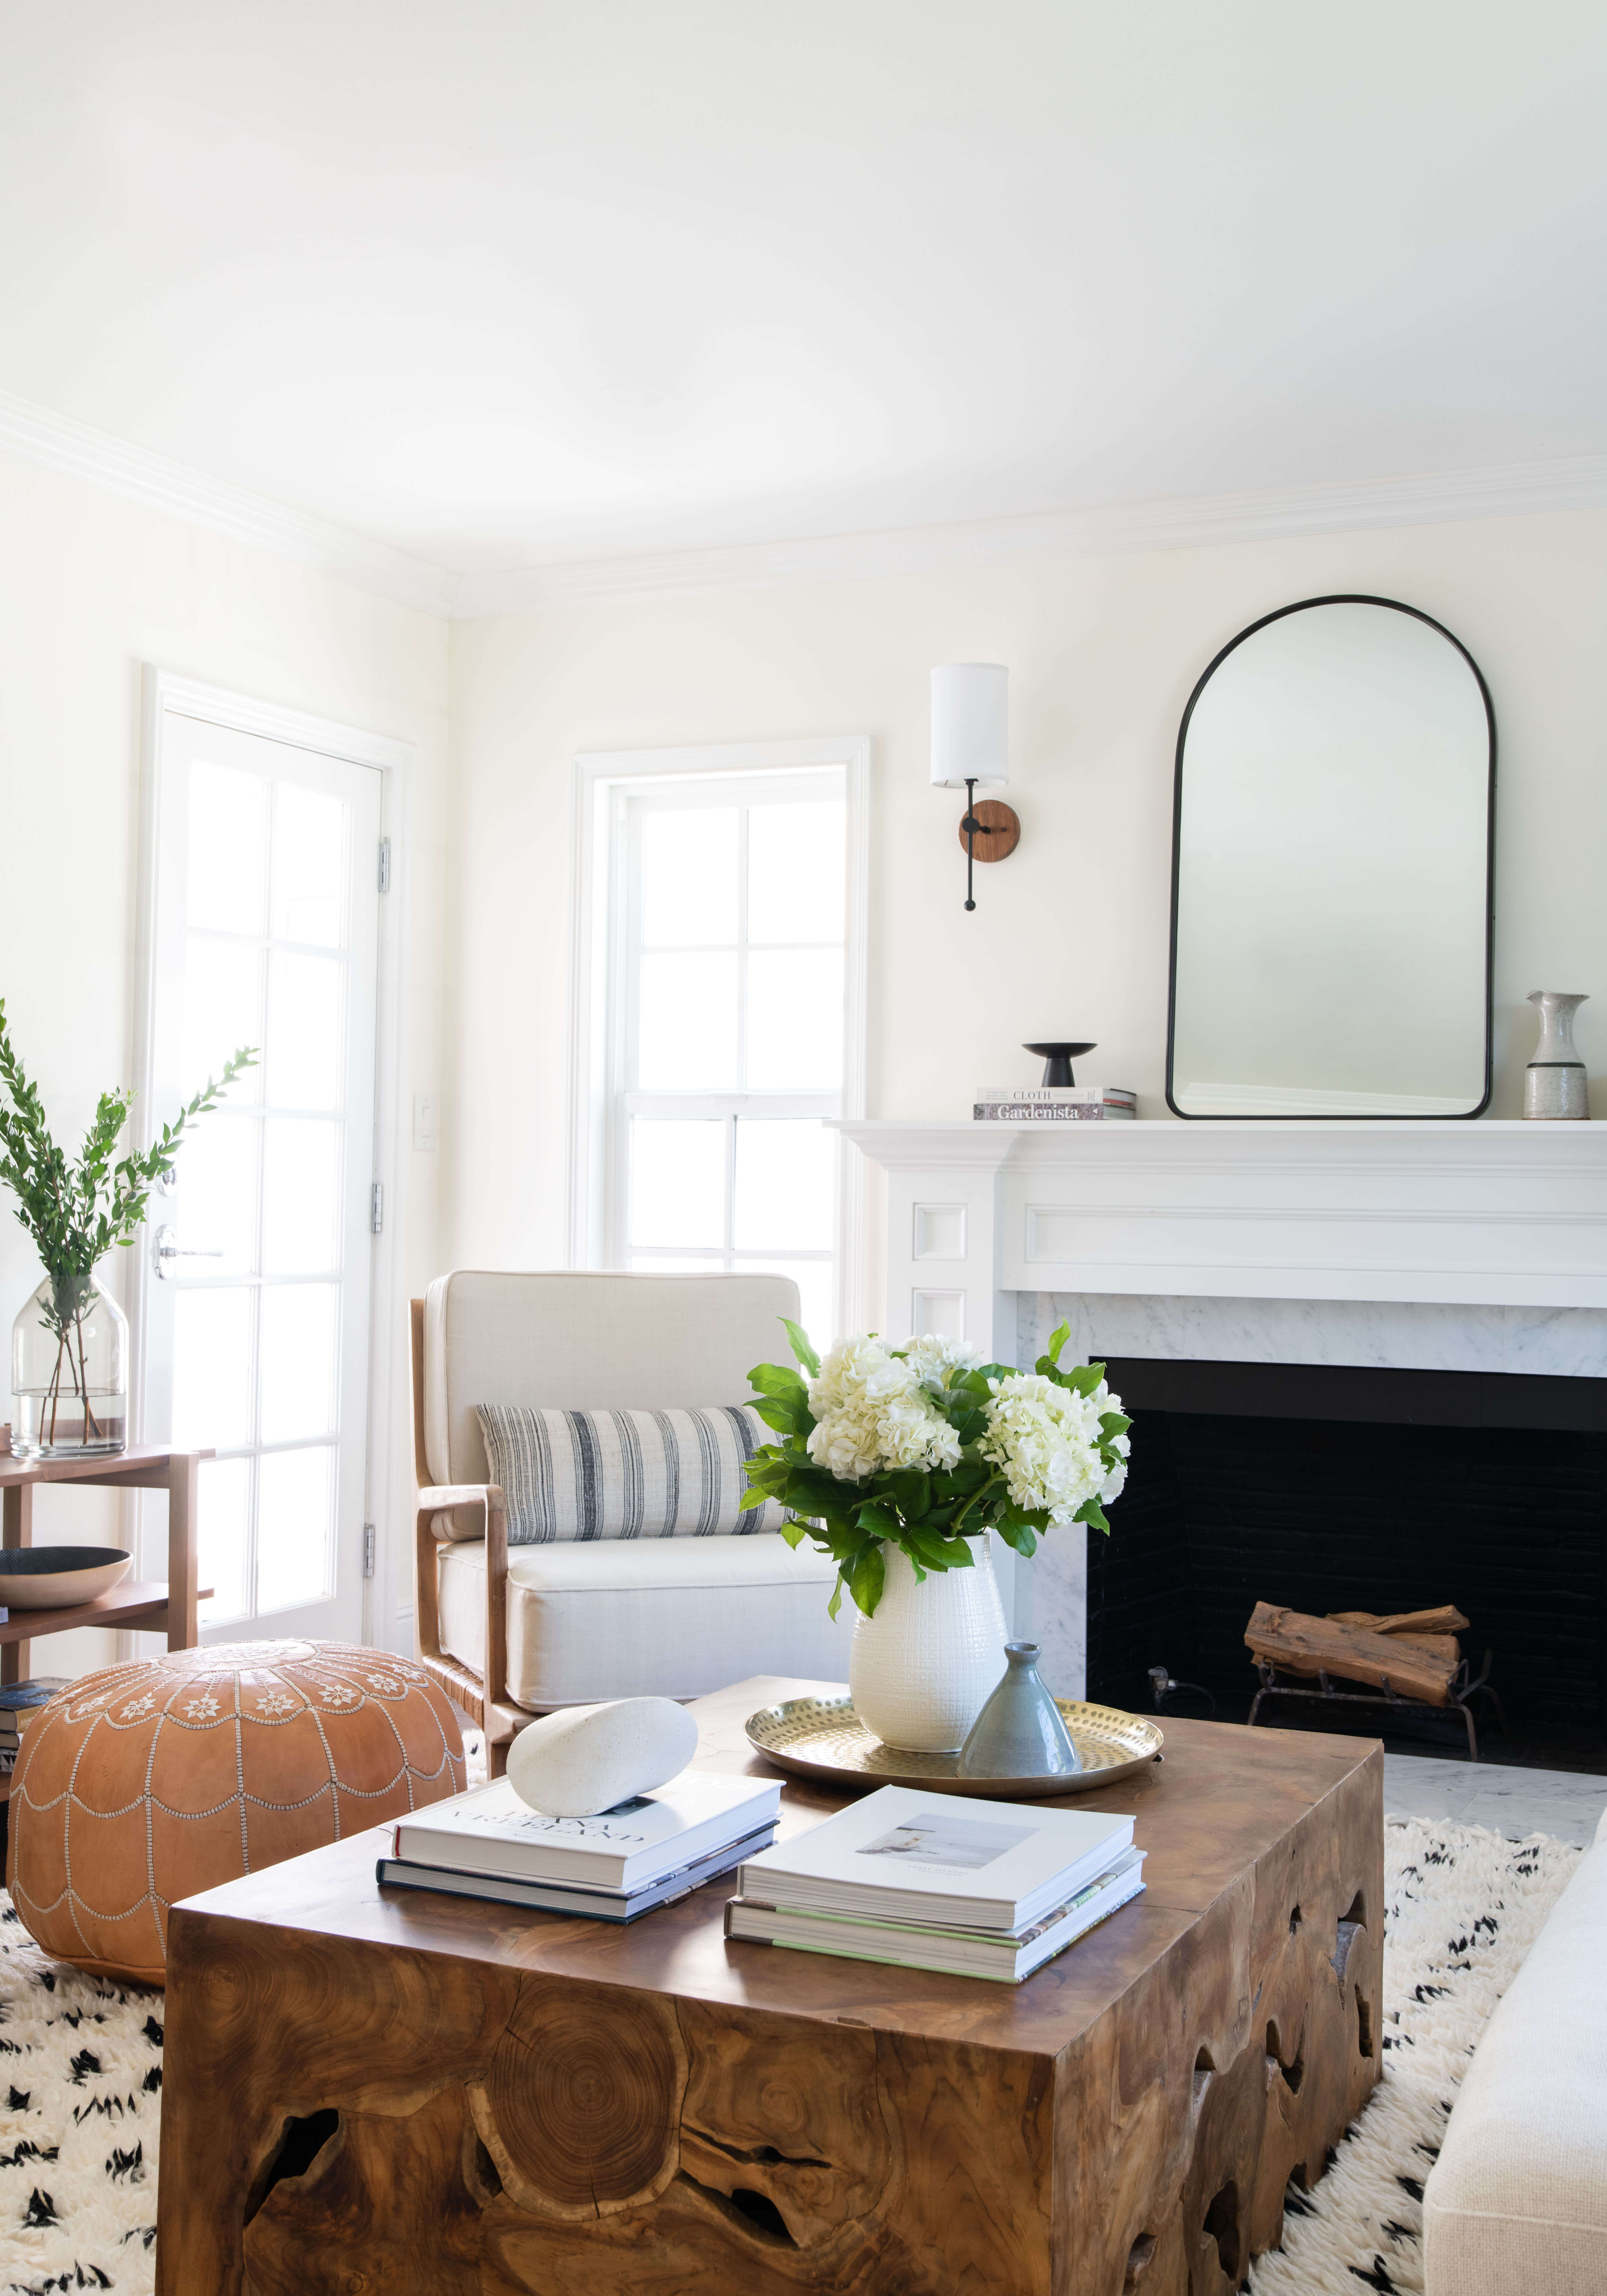 GINNY_MACDONALD_1938_EAST_COAST_TRADITIONAL_ARCHED_MIRROR